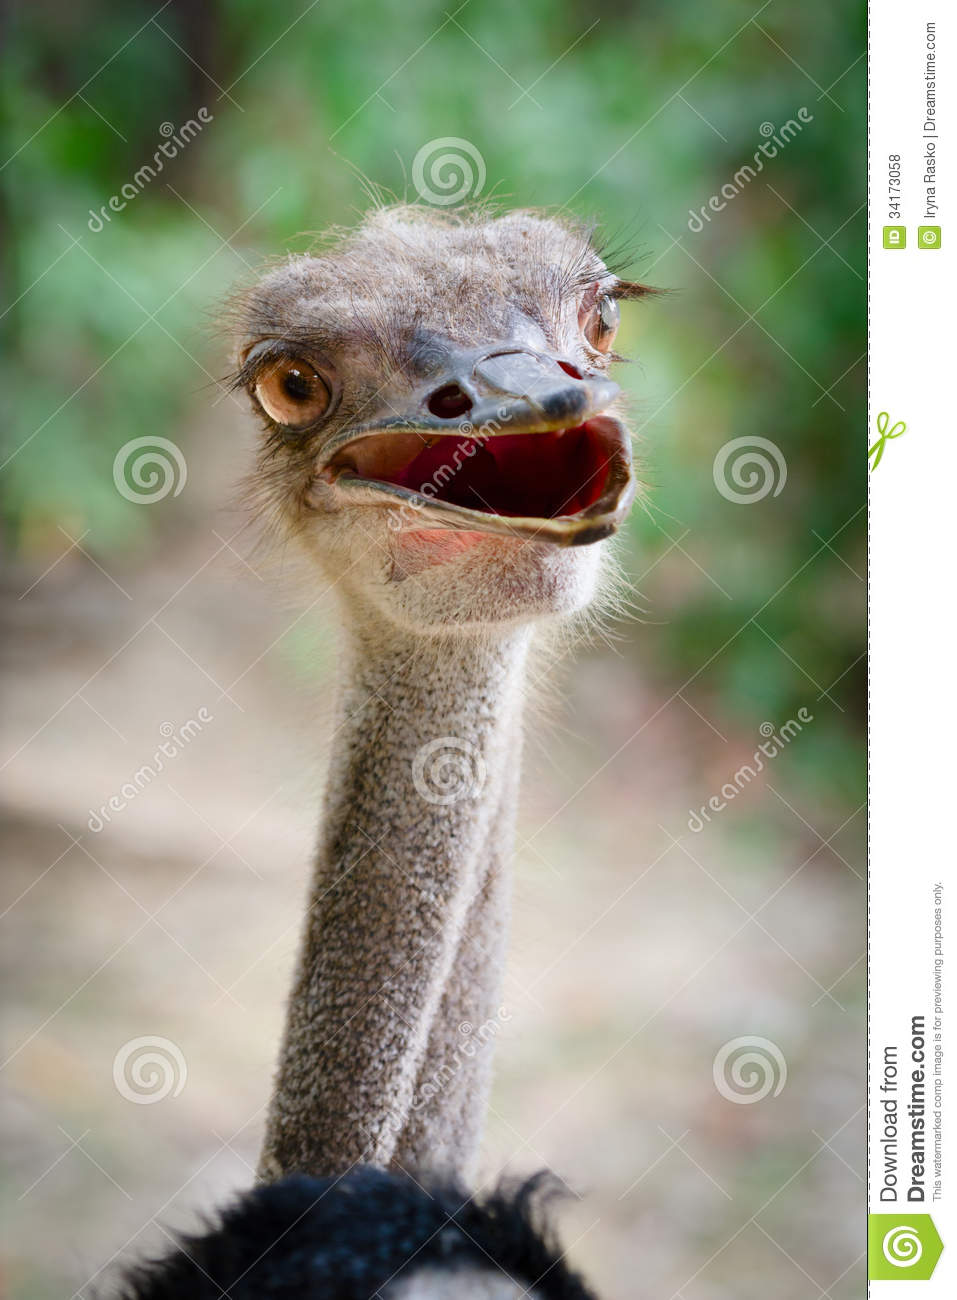 Royalty Free Stock Photos Funny Ostrich Bird Head Stupid Look Image341...